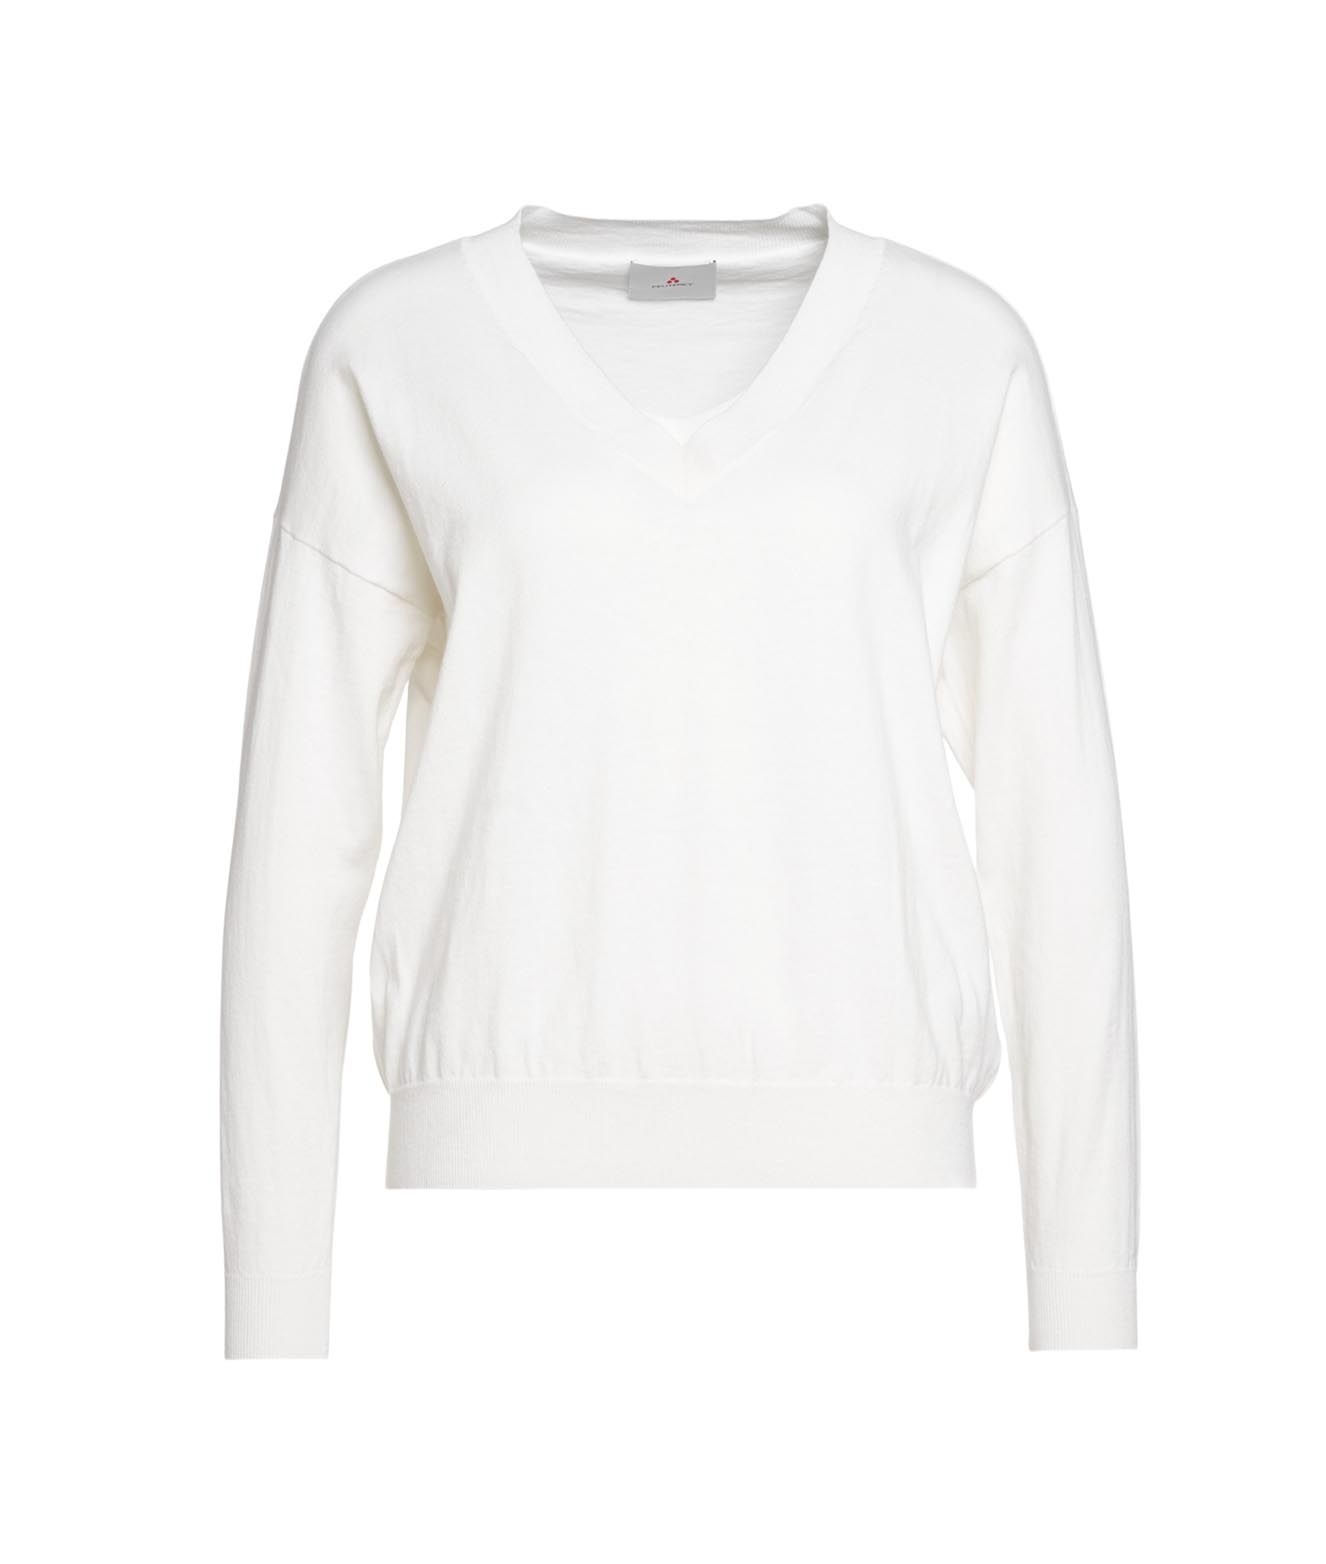 Peuterey PEUTEREY WOMEN'S PED35329901192111BIA WHITE OTHER MATERIALS SWEATER